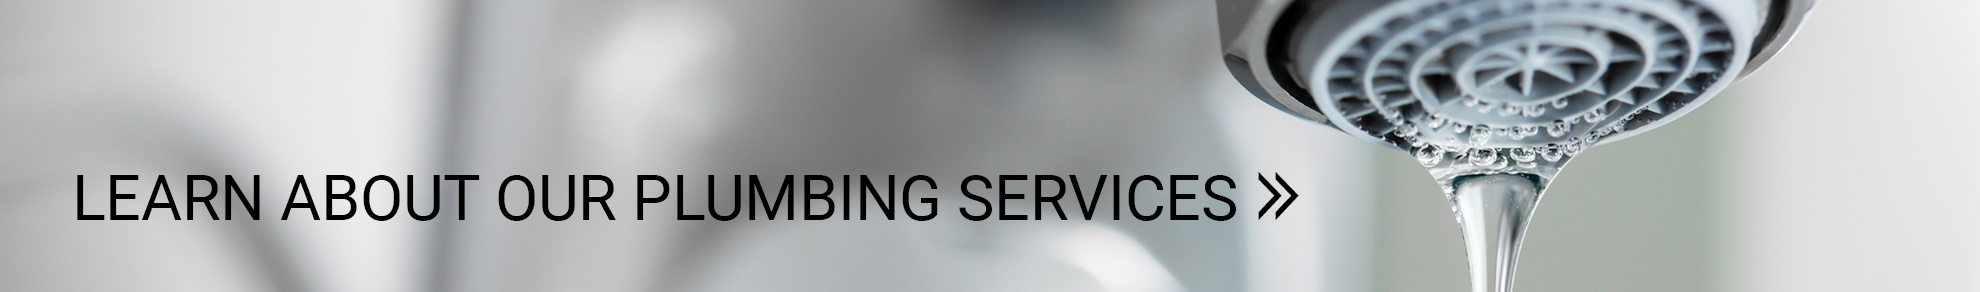 Learn About Our Plumbing Services